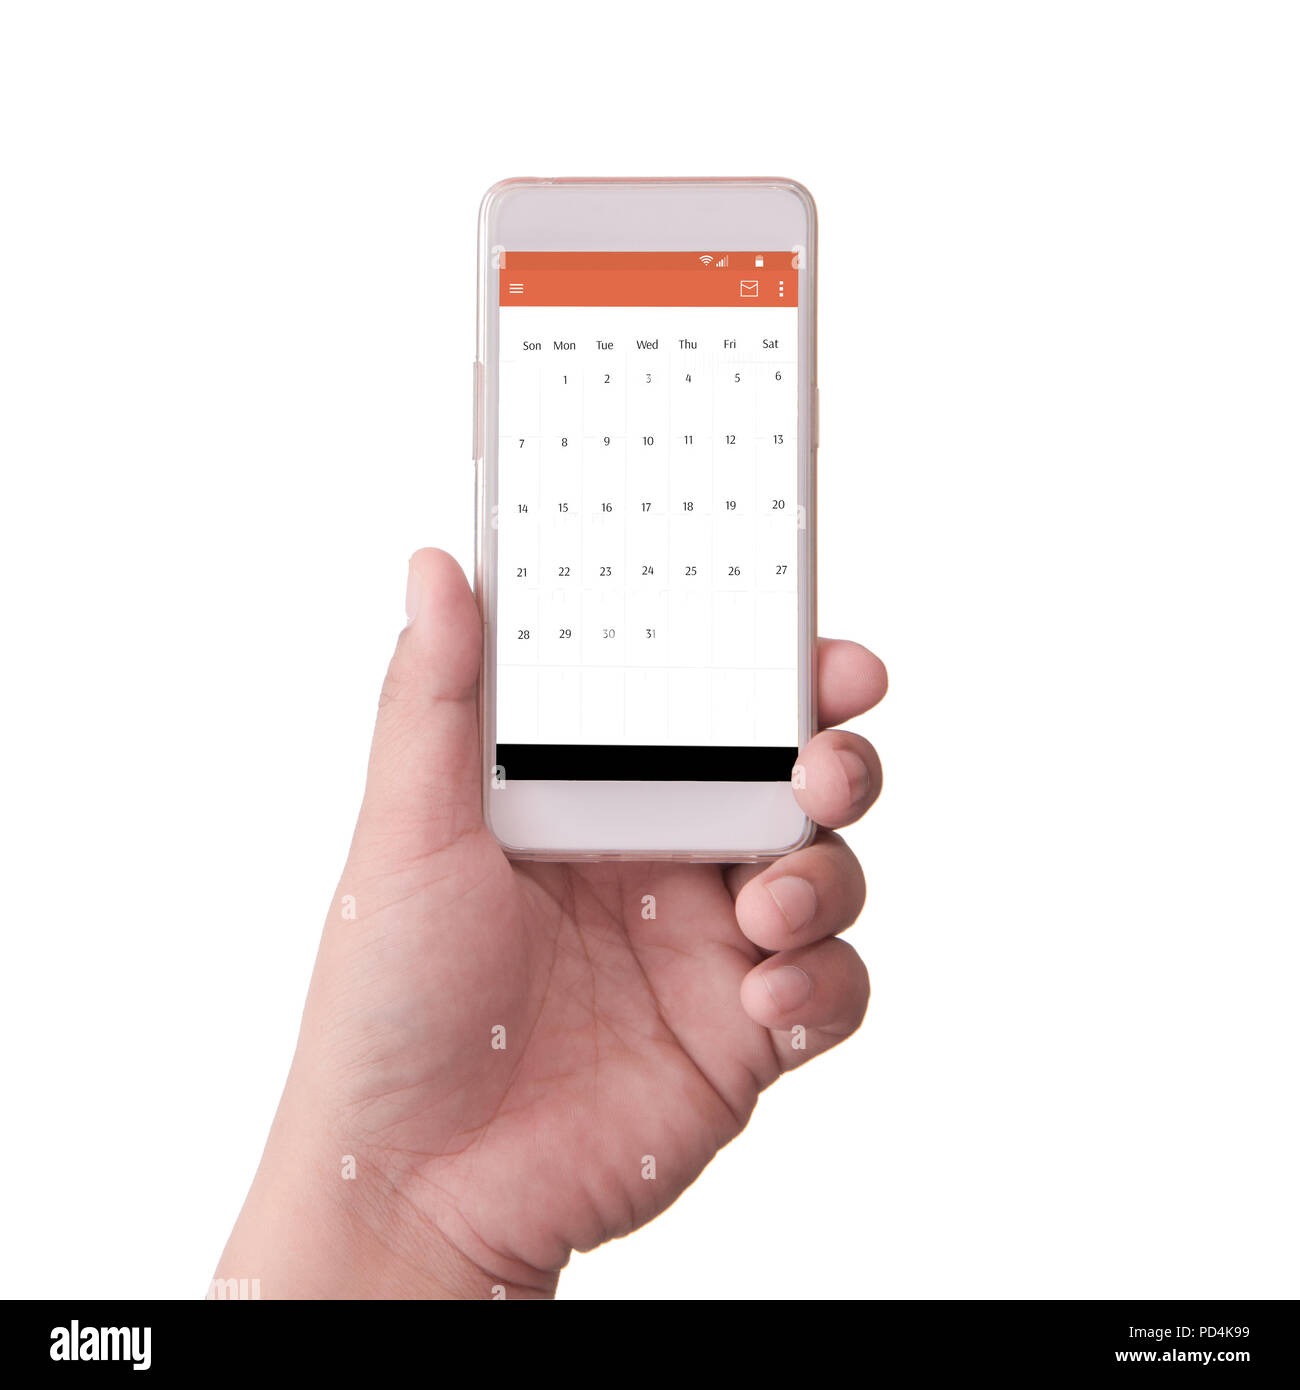 hand holding smart phone with schedule - Stock Image